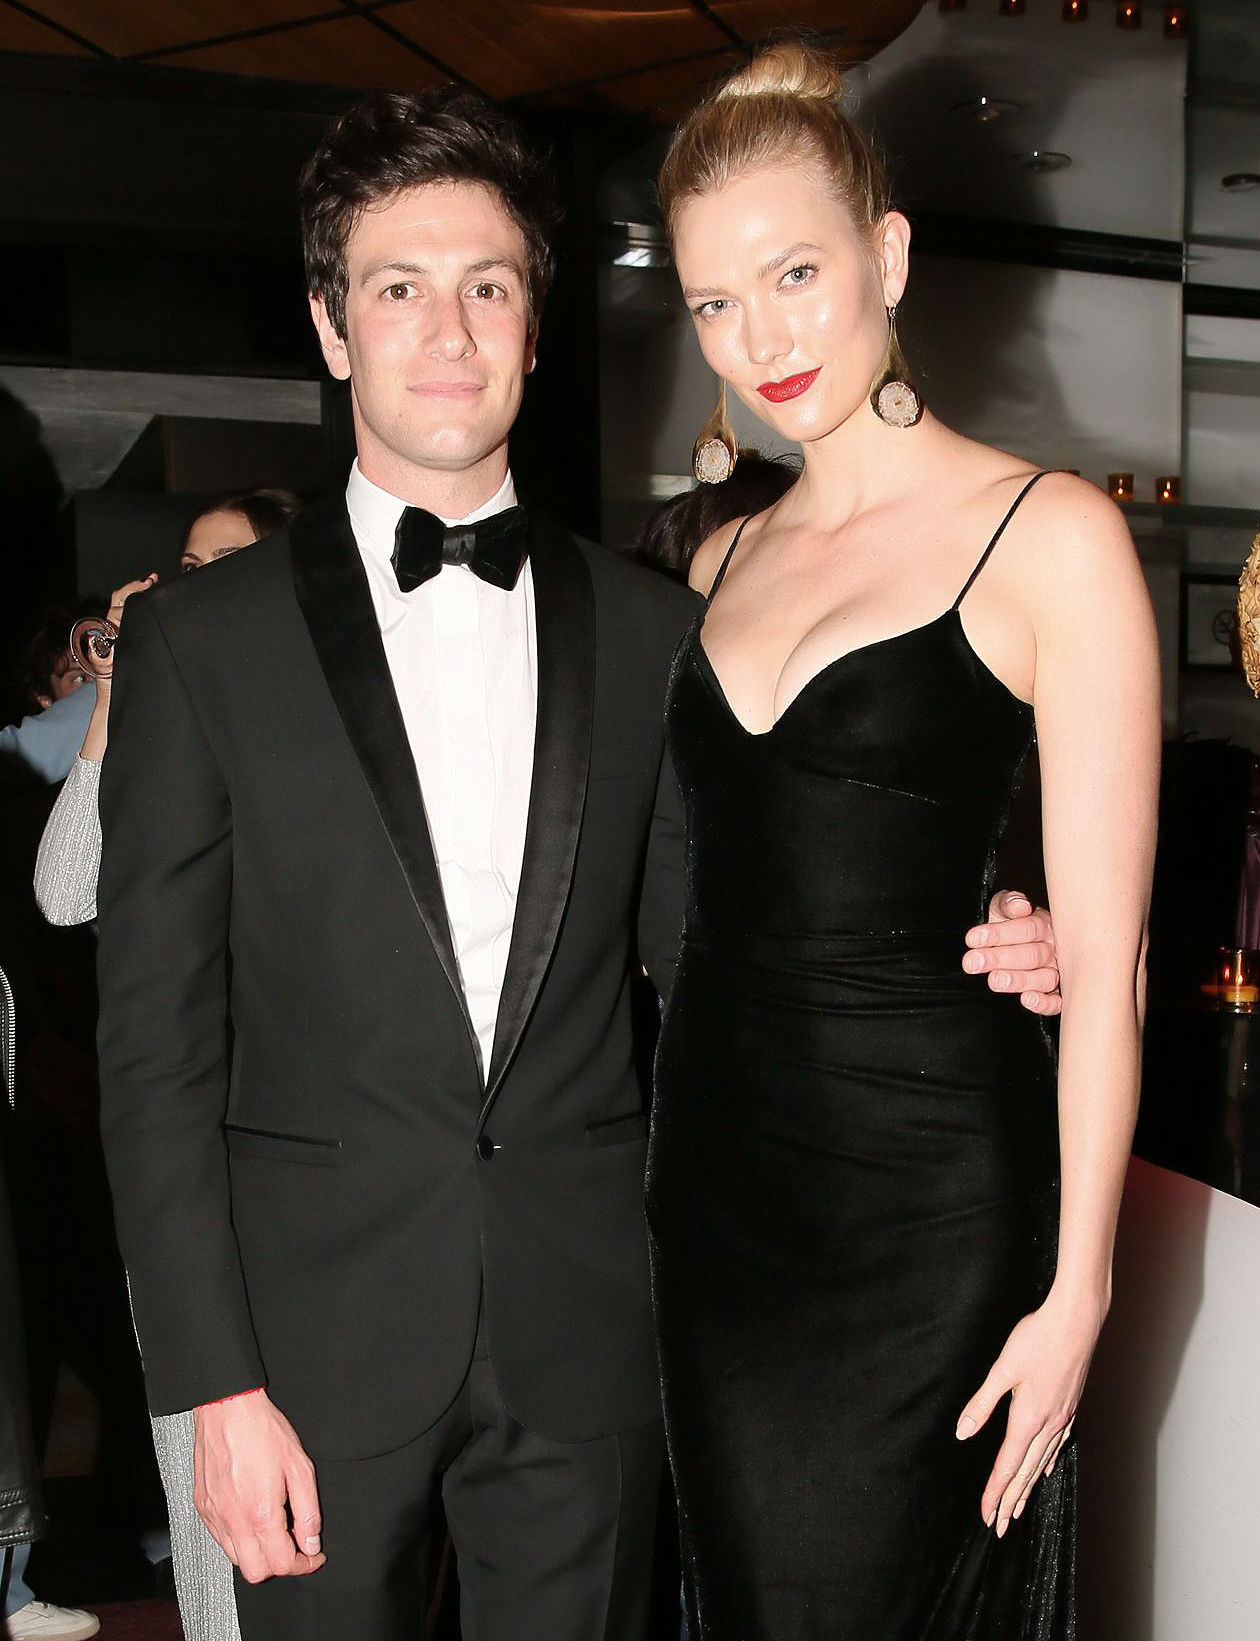 From left: Josh Kushner and Karlie Kloss in 2018